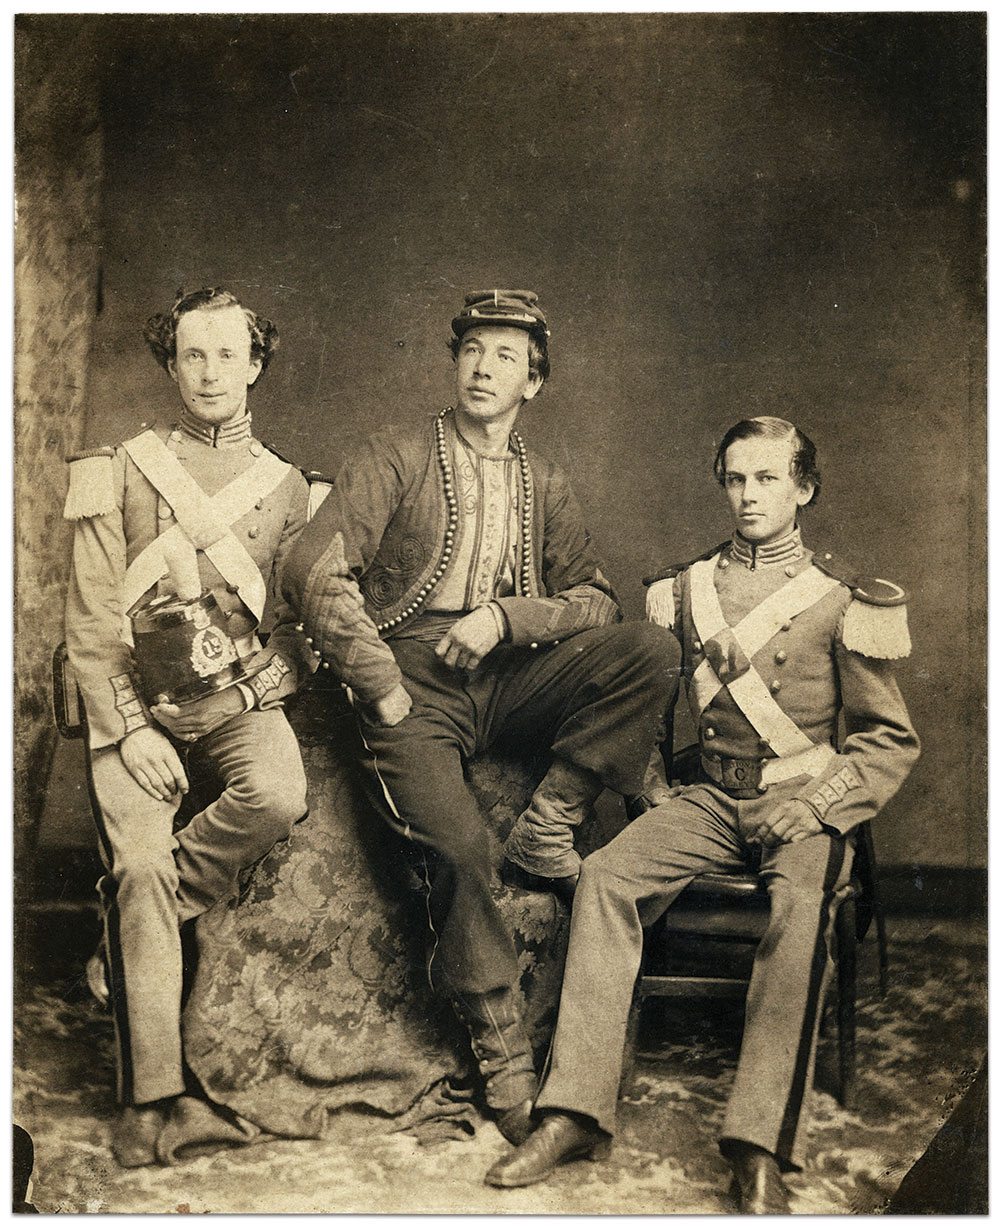 Two members of the 13th in their regimental dress uniform with shako pose with a United States Zouave Cadet. While the 7th Regiment hosted the Zouave Cadets in Manhattan, the 13th acted as hosts in Brooklyn.Albumen print by an anonymous photographer.